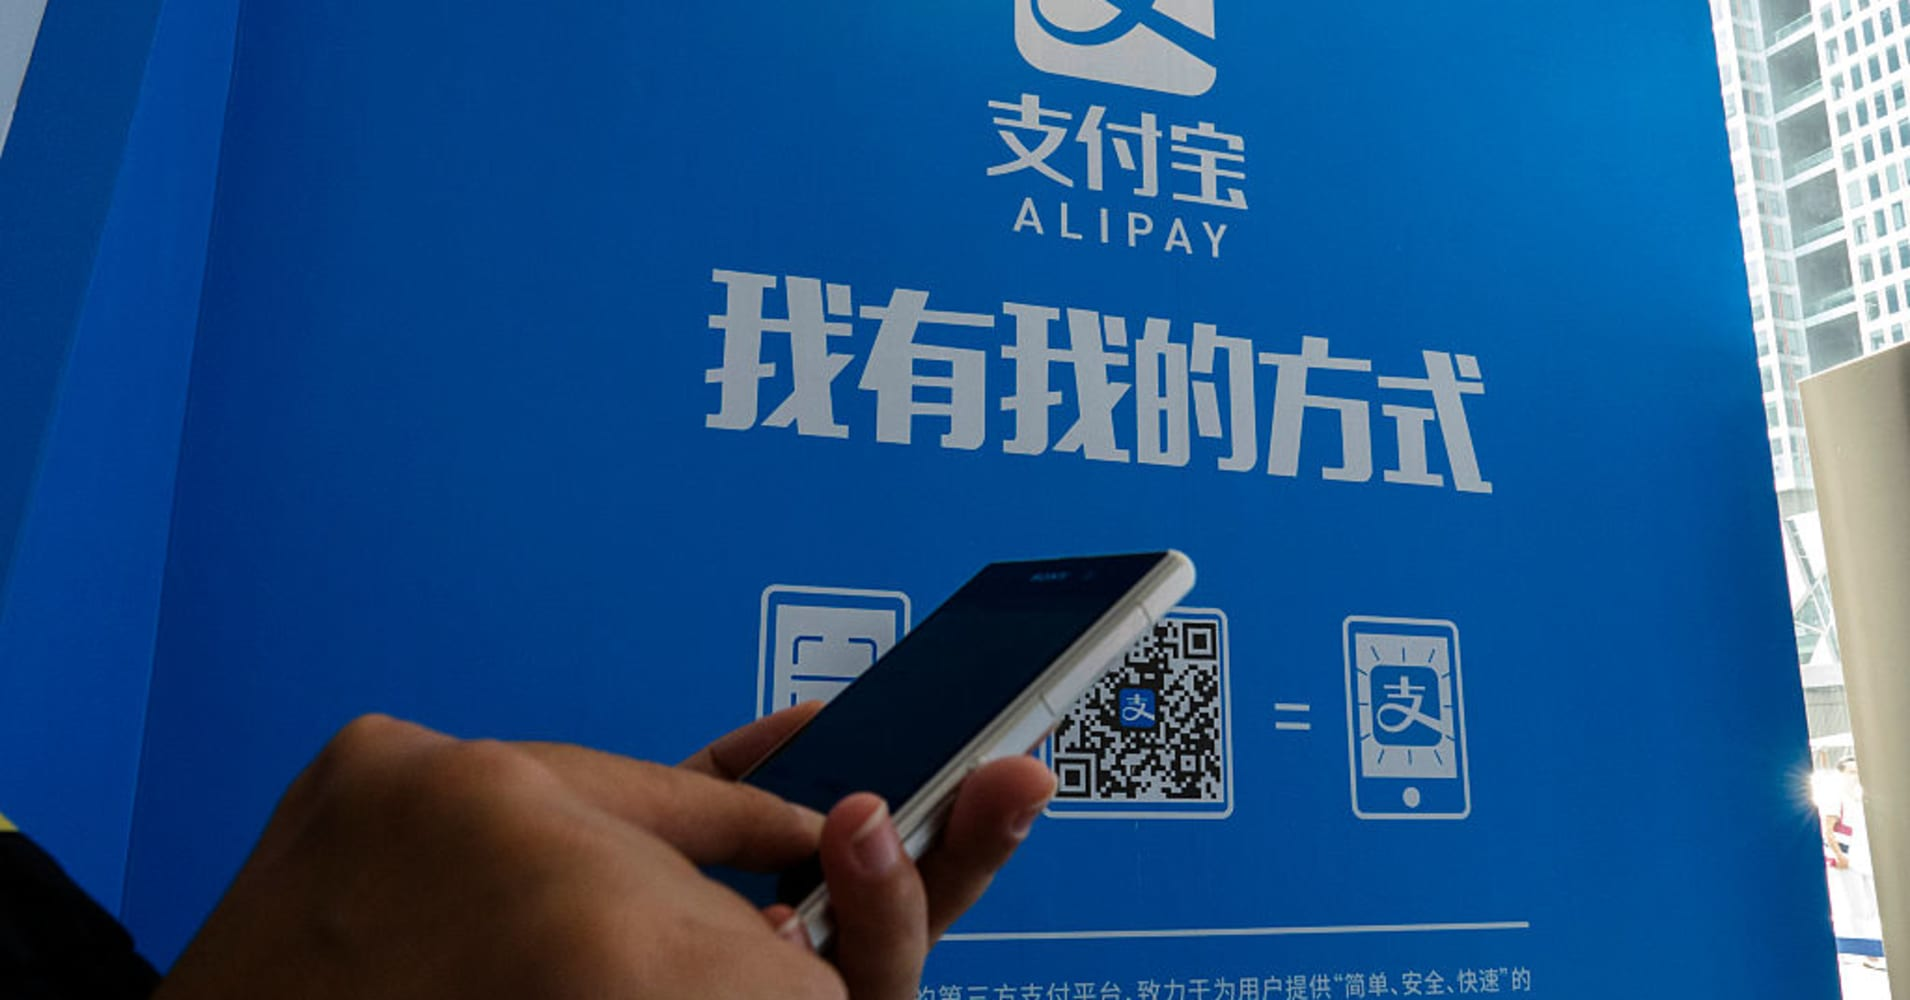 Thumbnail for Alibaba's payments app Alipay expands into Africa